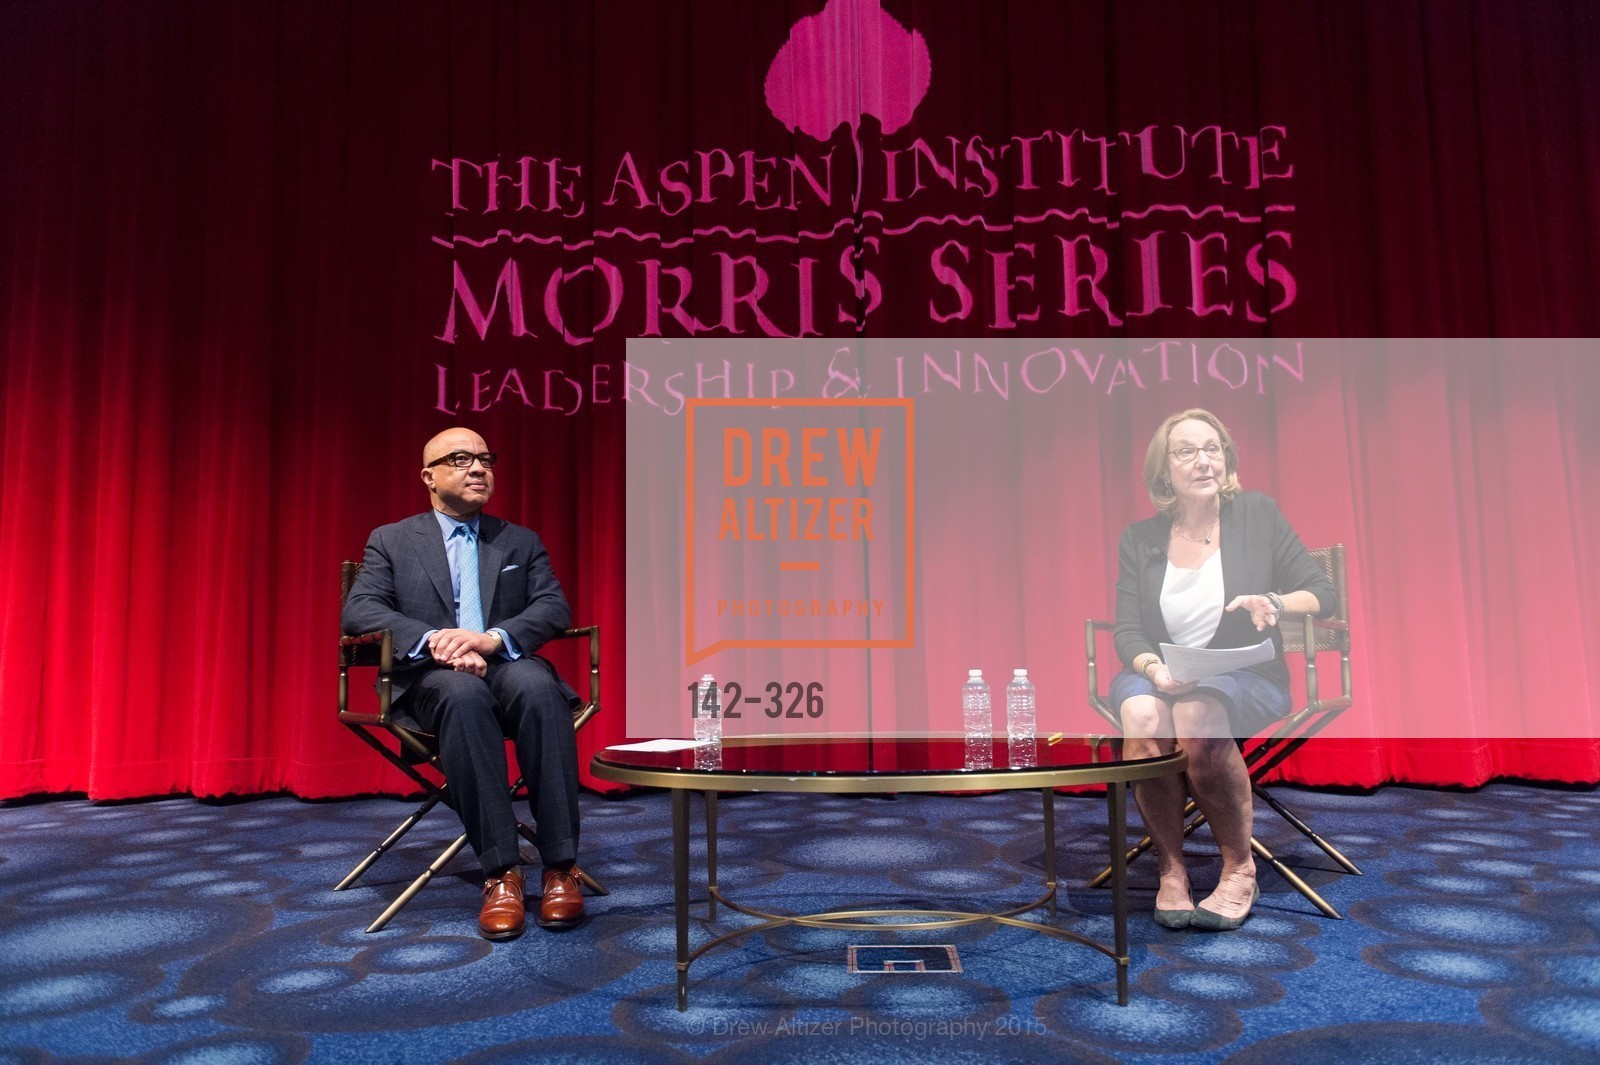 Extras, Aspen Institute's Morris Series Lectures: Leadership and Innovation Program, September 30th, 2015, Photo,Drew Altizer, Drew Altizer Photography, full-service event agency, private events, San Francisco photographer, photographer California